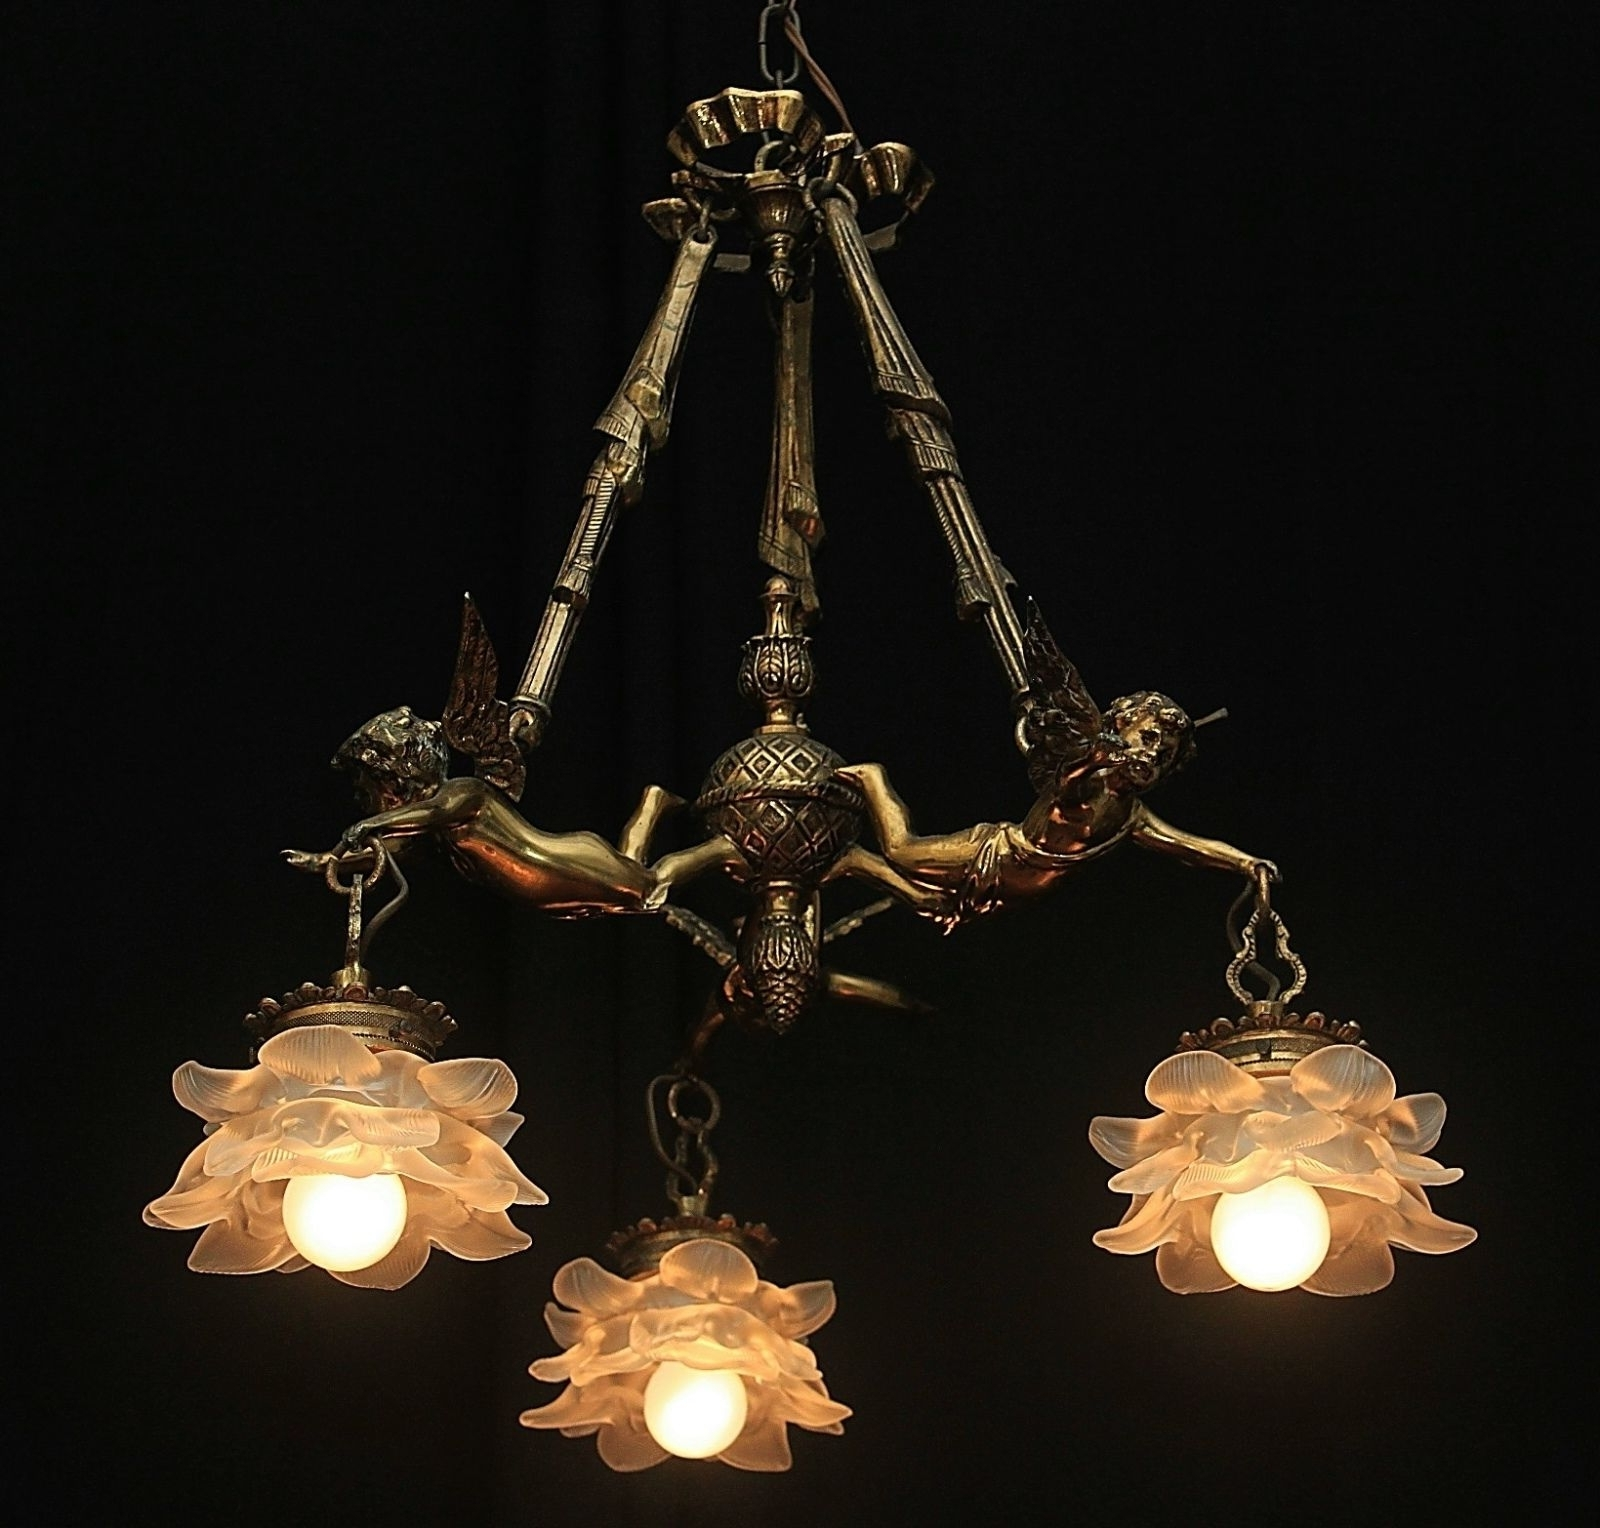 Vintage Bronze French Shabby Flying Chic Cherub Chandelier With With Regard To Popular Vintage French Chandeliers (View 17 of 20)